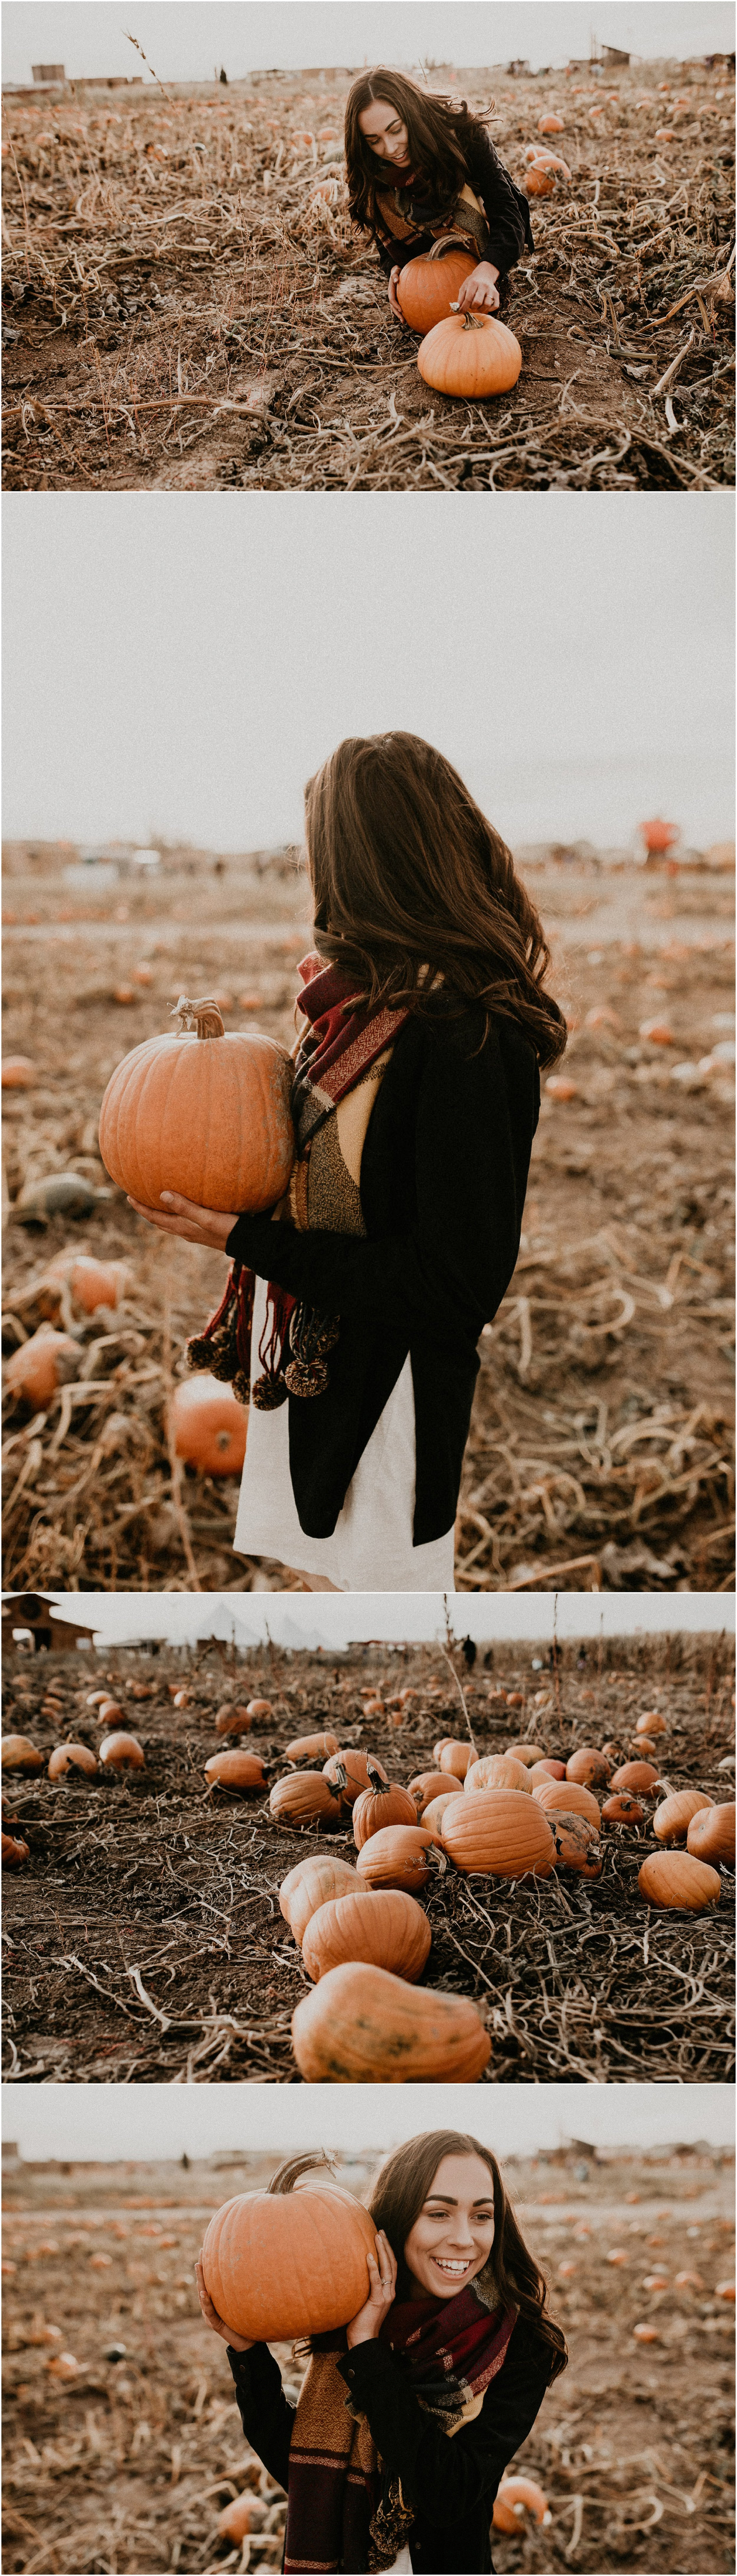 Boise Senior Boudoir Wedding Photographer Makayla Madden Photography Idaho Farmstead Corn Maze Fall Portrait Outfit Ideas Inspiration Plaid Scarf Pumpkin Patch Meridian